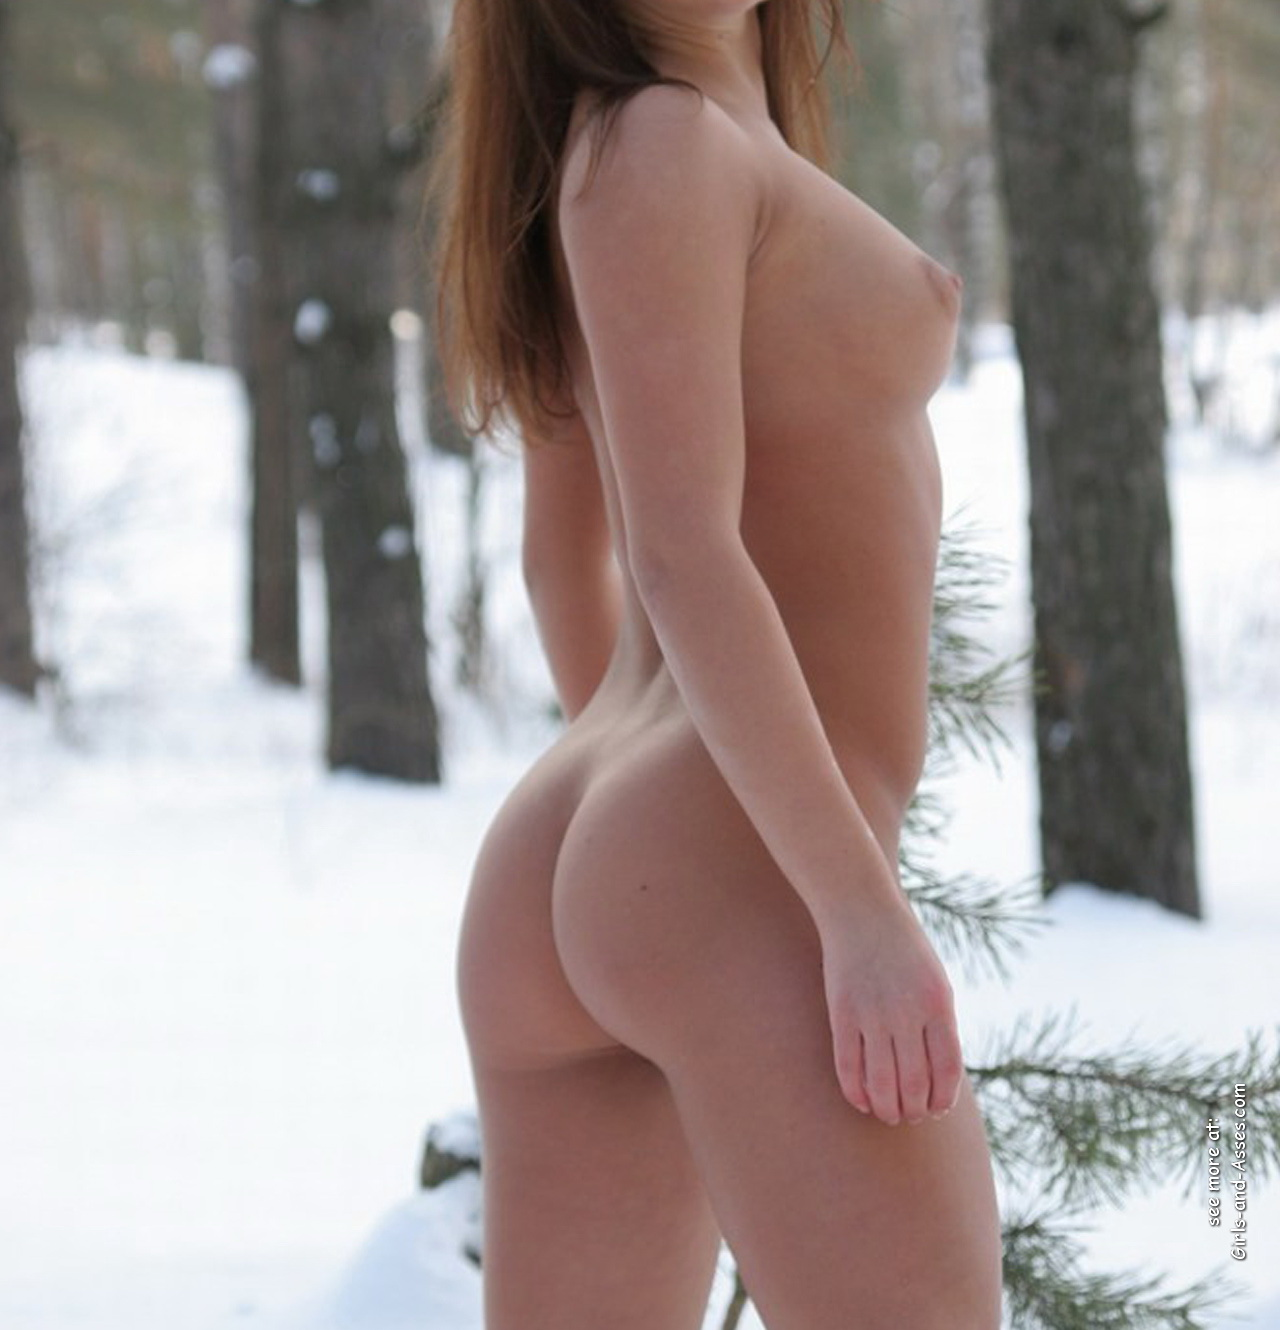 winter and snow and naked girl with onion booty photo 01252